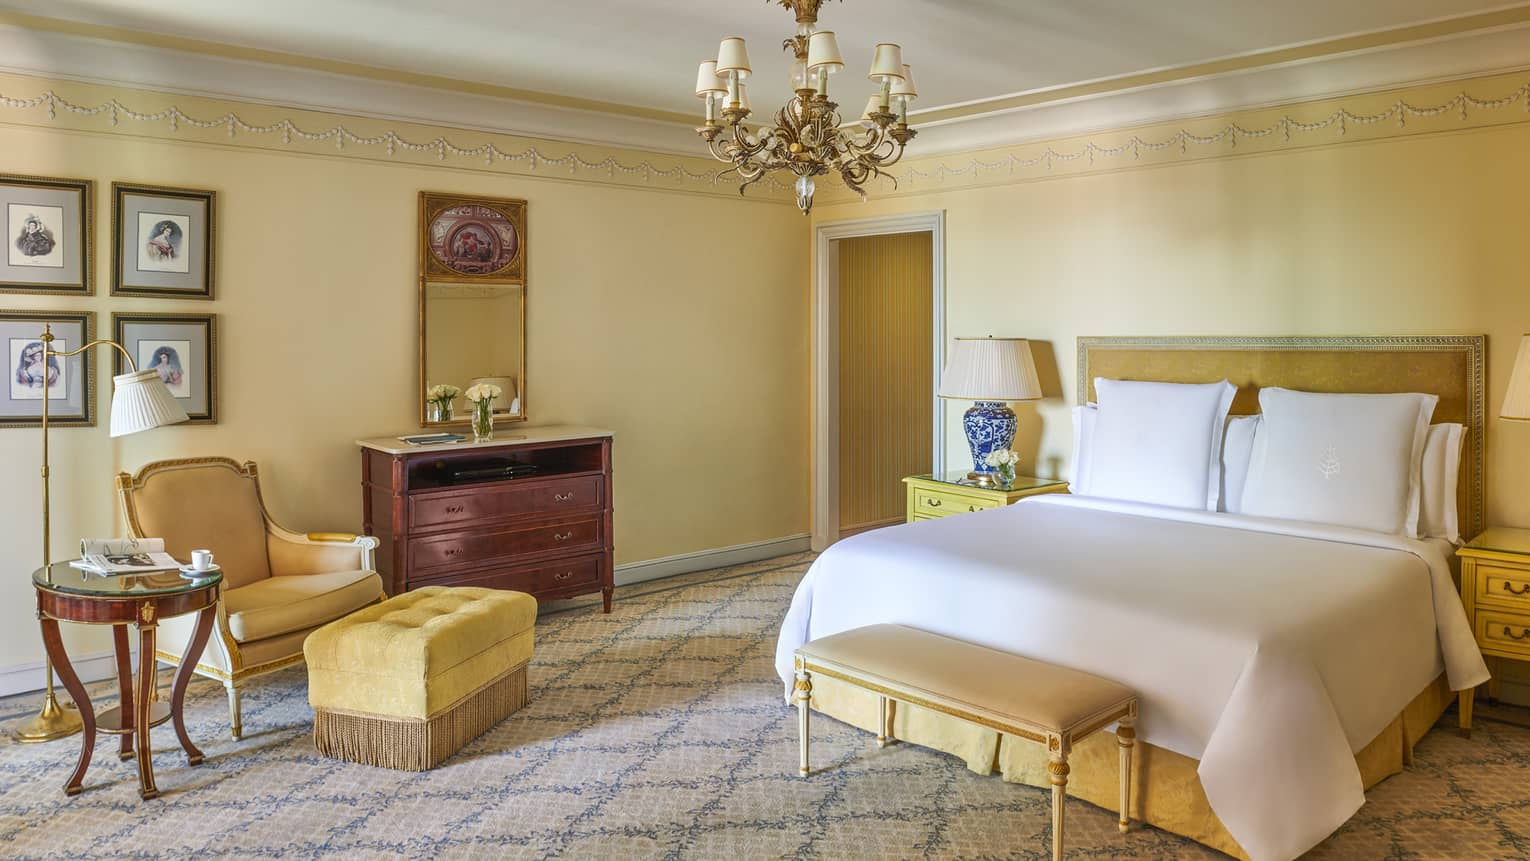 Yellow walls and furniture in the City View Room